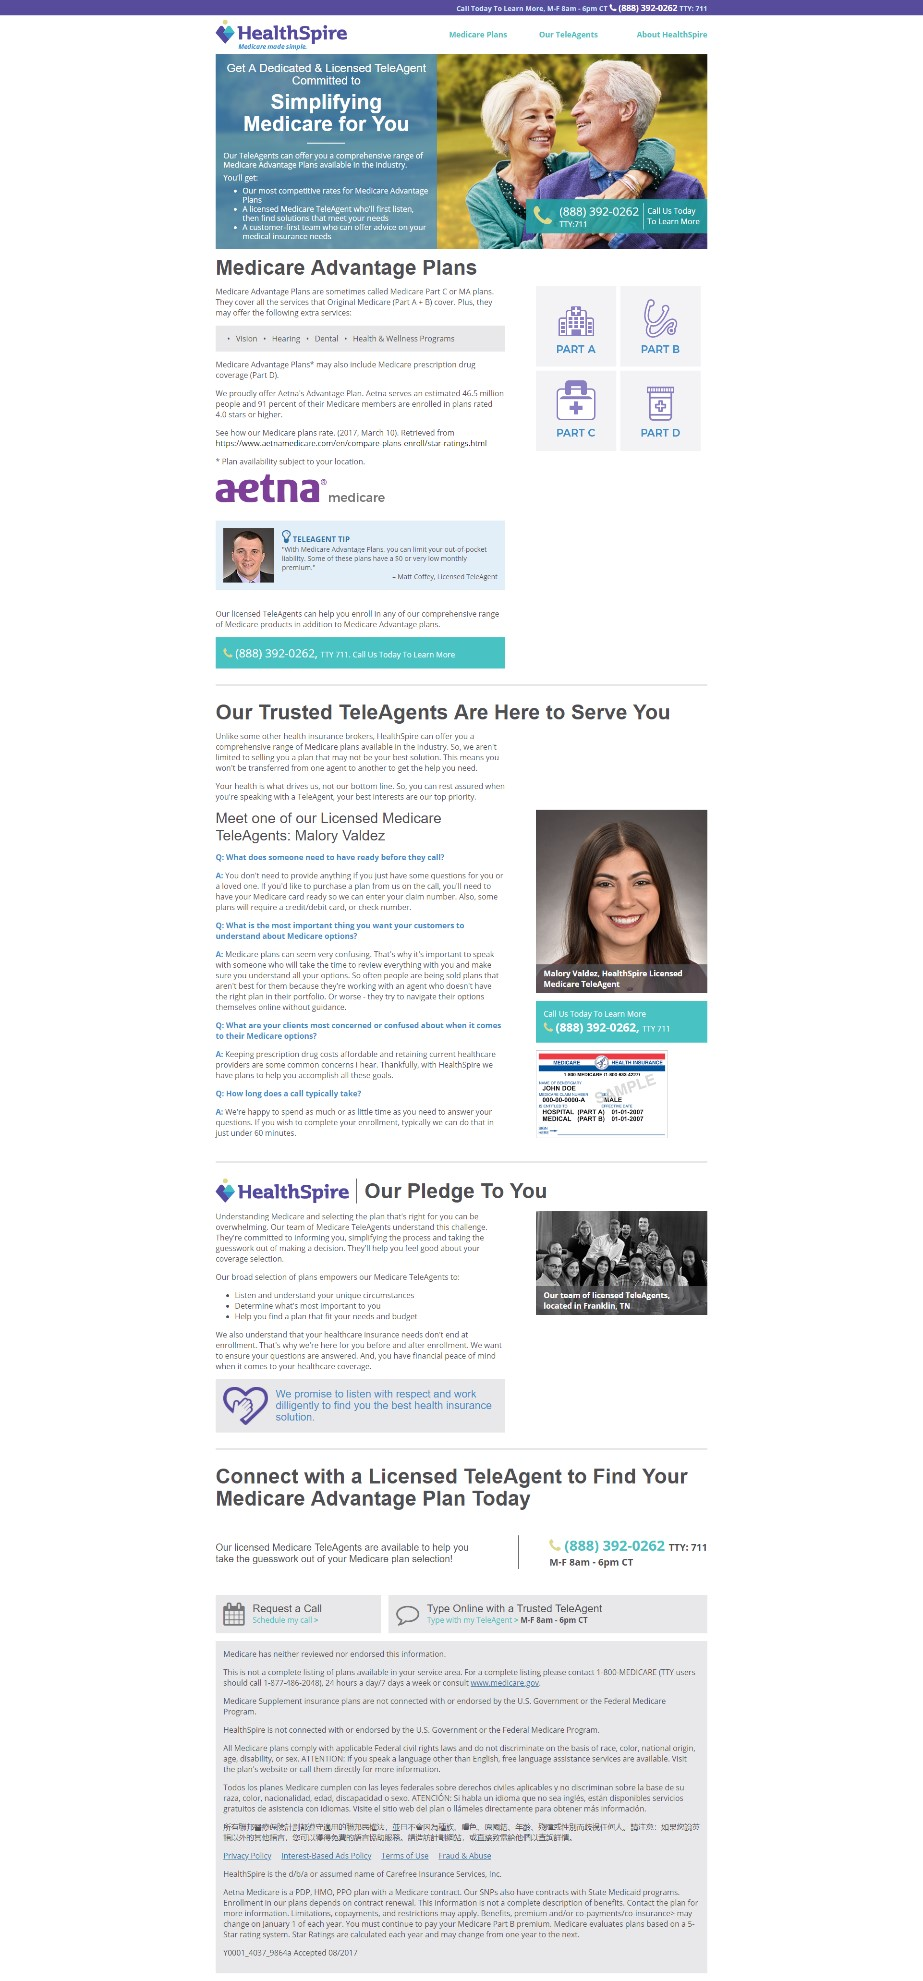 Landing Page Optimization: How Aetna's HealthSpire startup generated 638% more leads for its call center